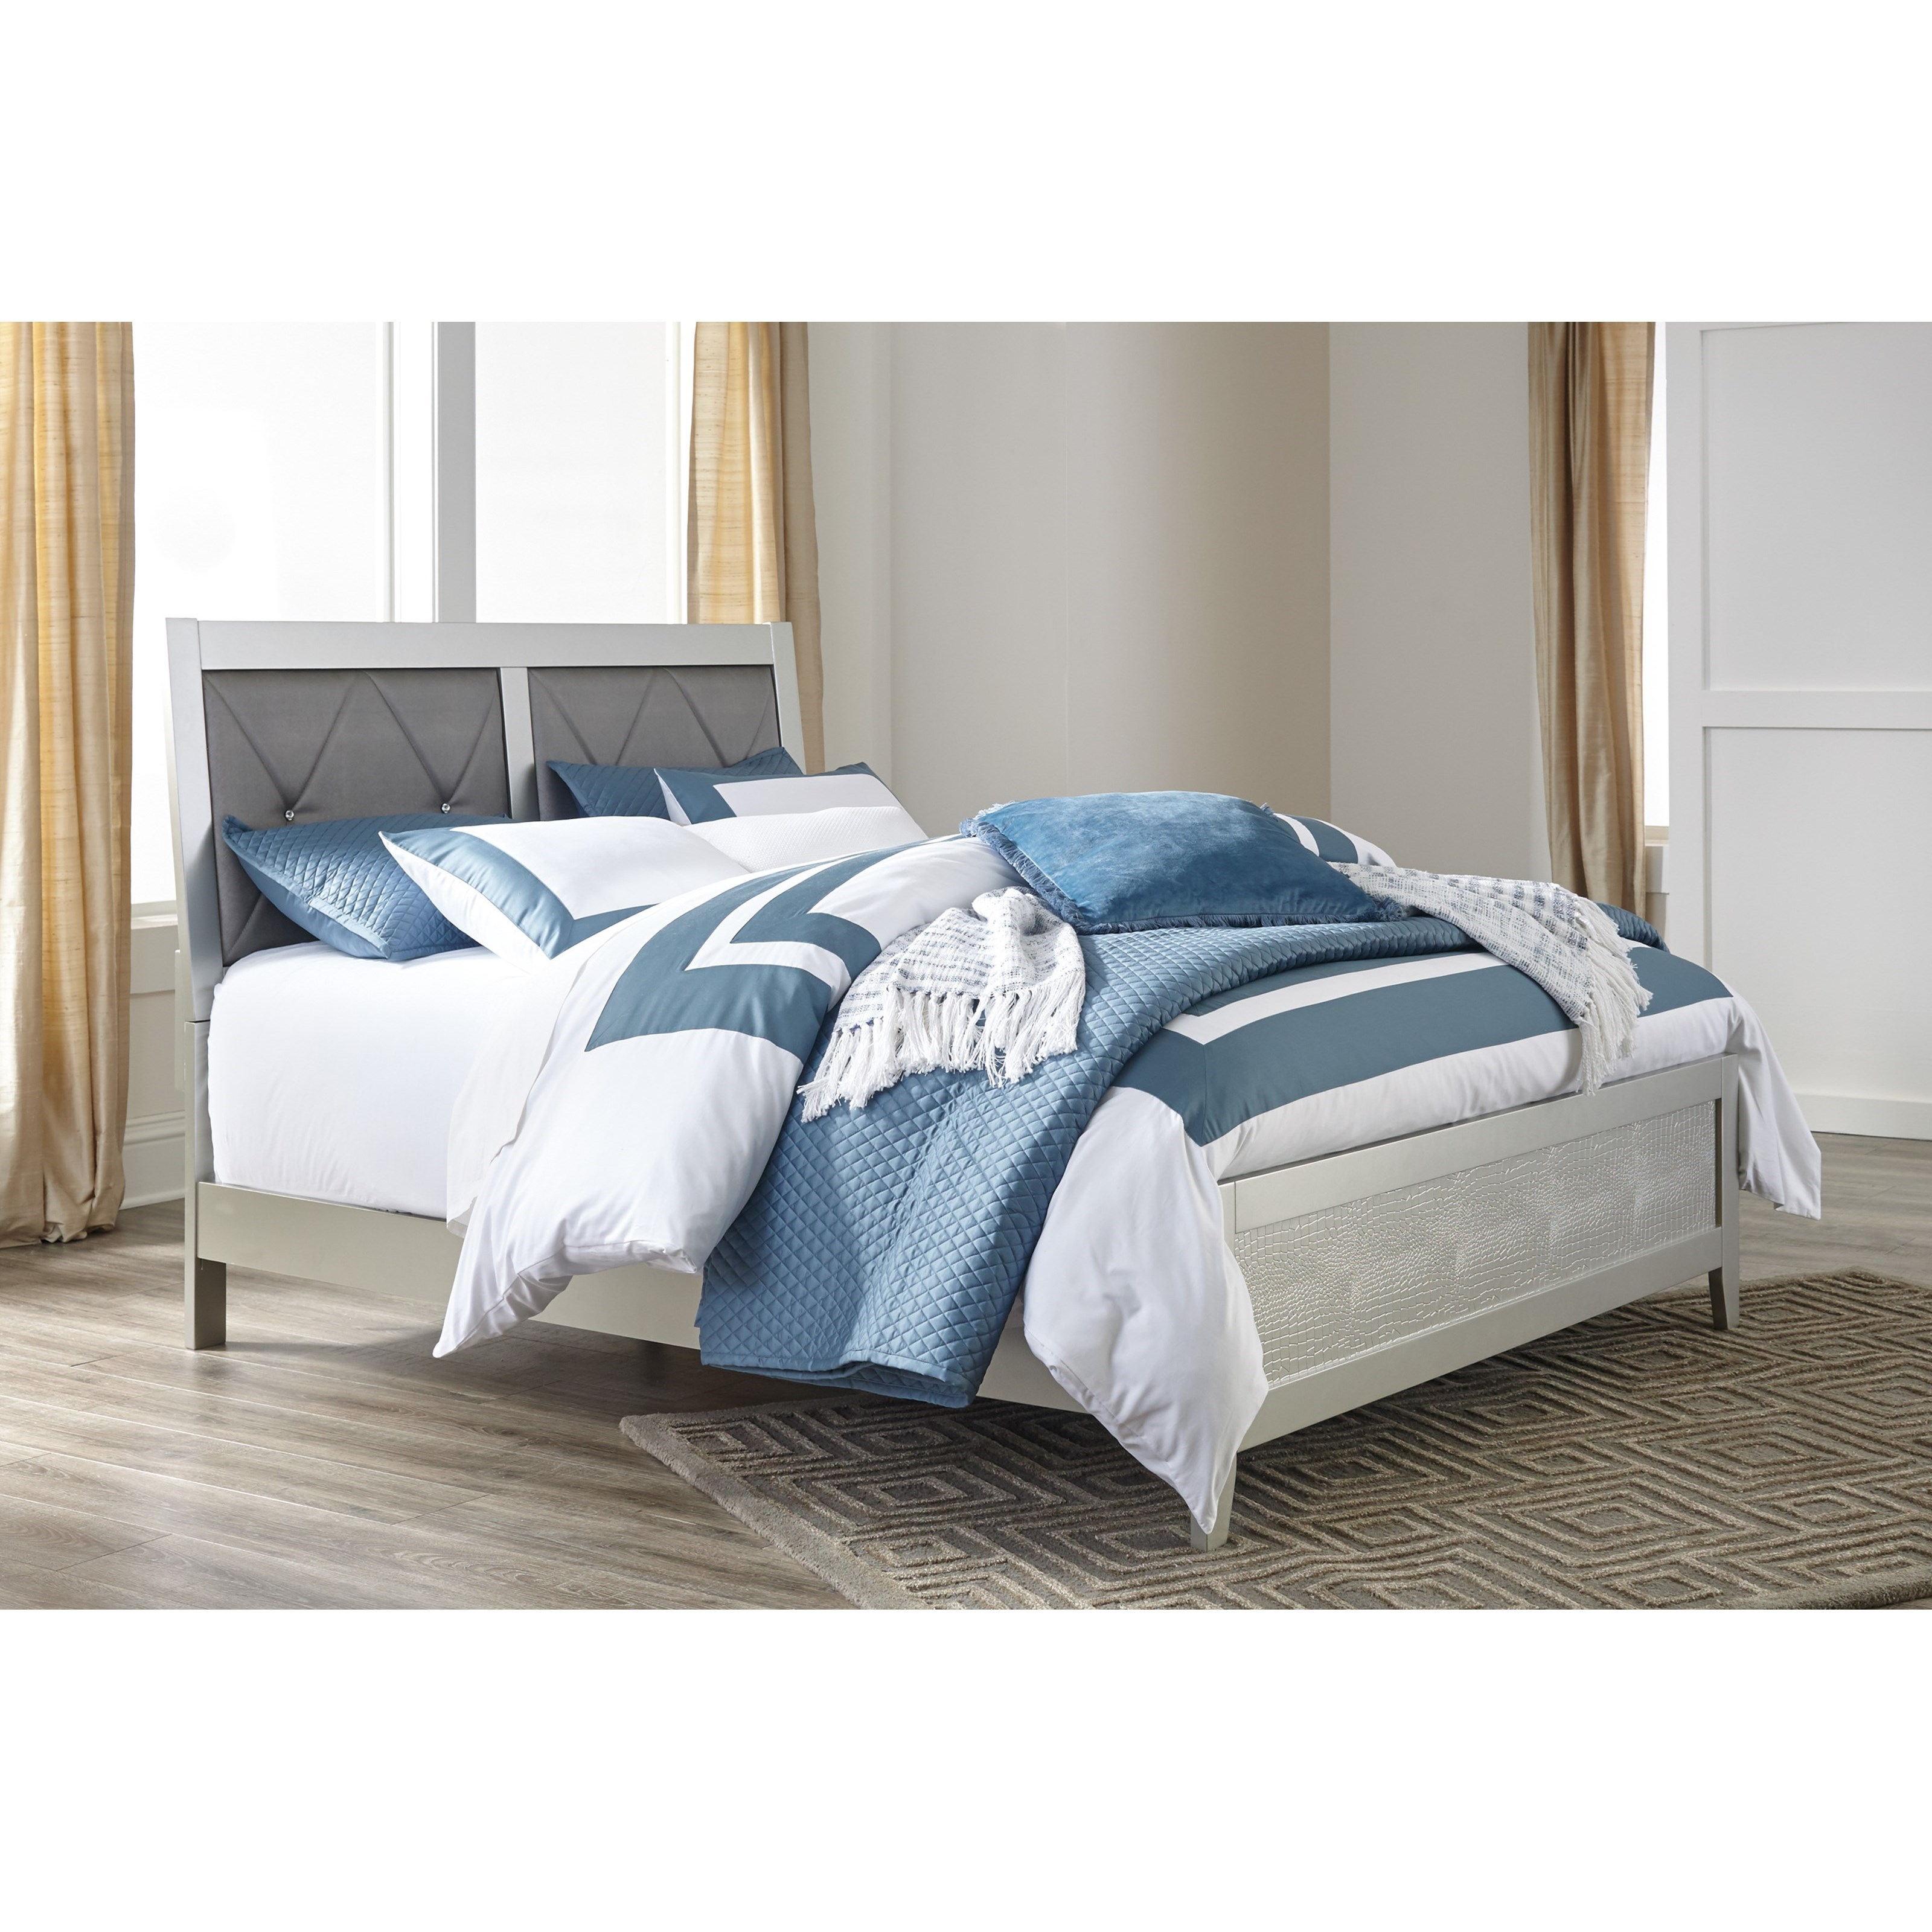 Signature Design By Ashley Olivet Glam King Panel Bed With